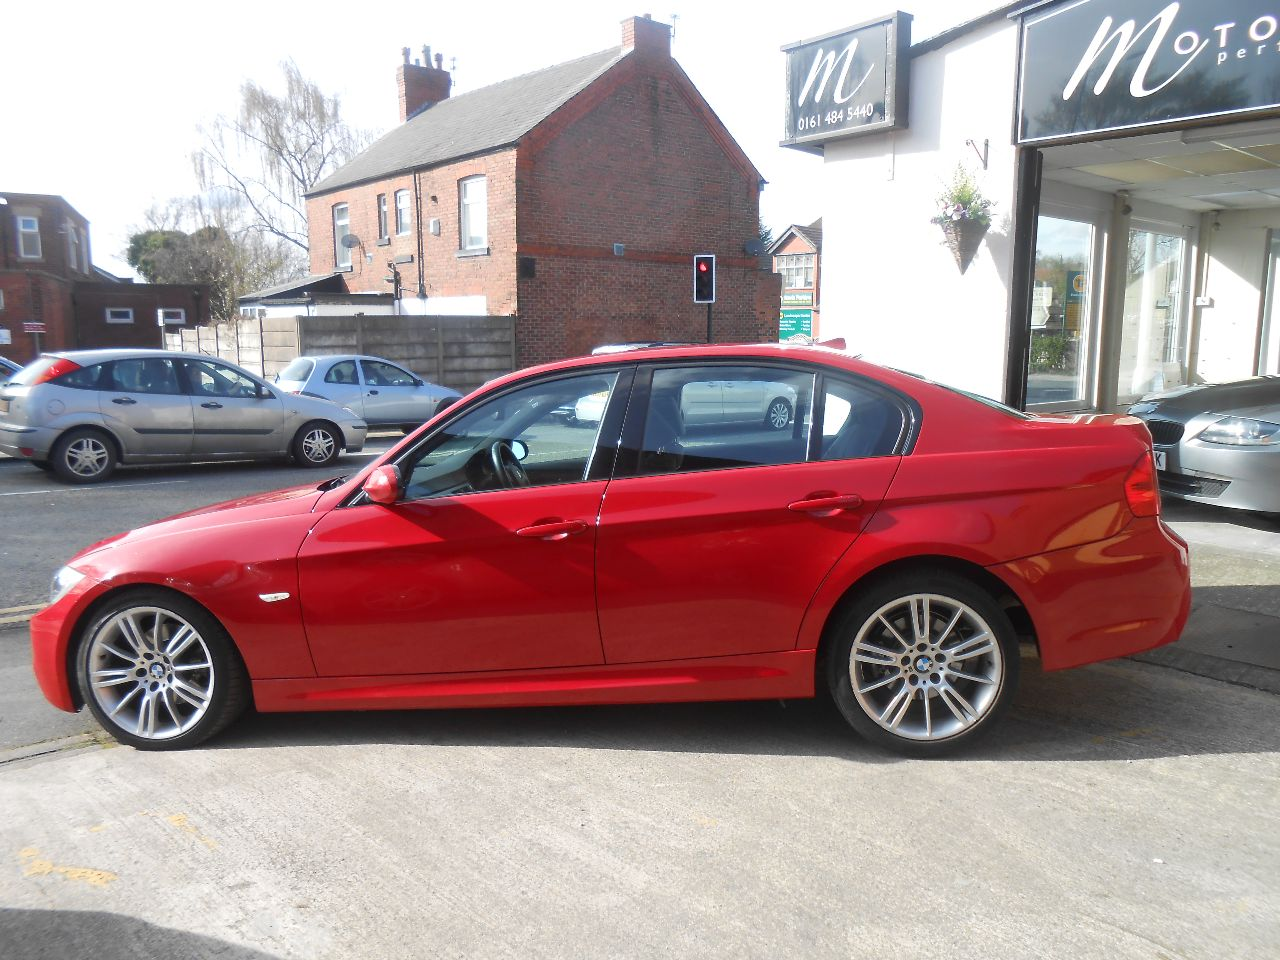 used bmw 3 series 320d m sport 177 4dr for sale in stockport cheshire motorhouse cheshire. Black Bedroom Furniture Sets. Home Design Ideas